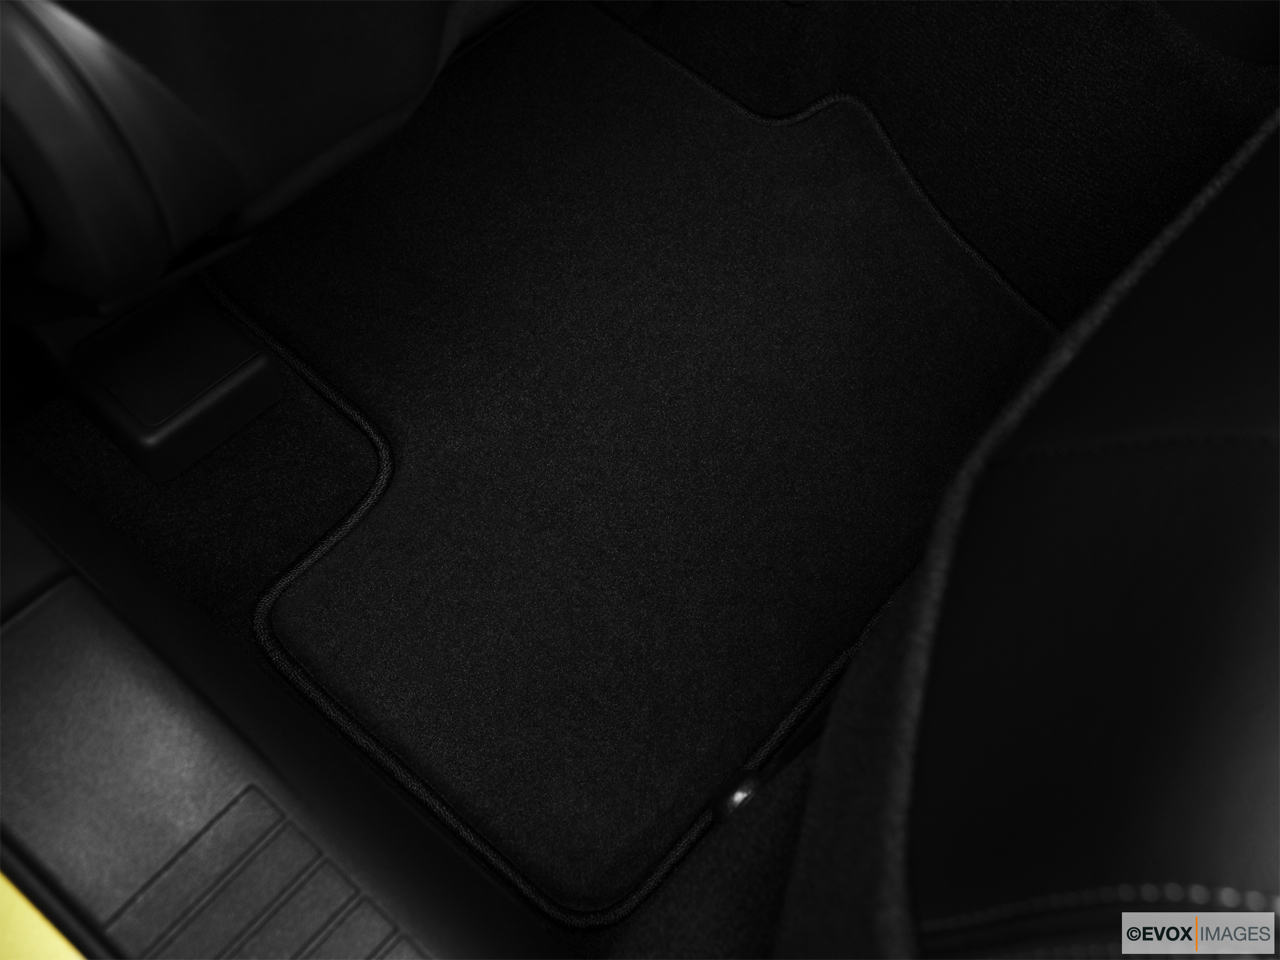 2010 Jeep Patriot Limited Rear driver's side floor mat. Mid-seat level from outside looking in.